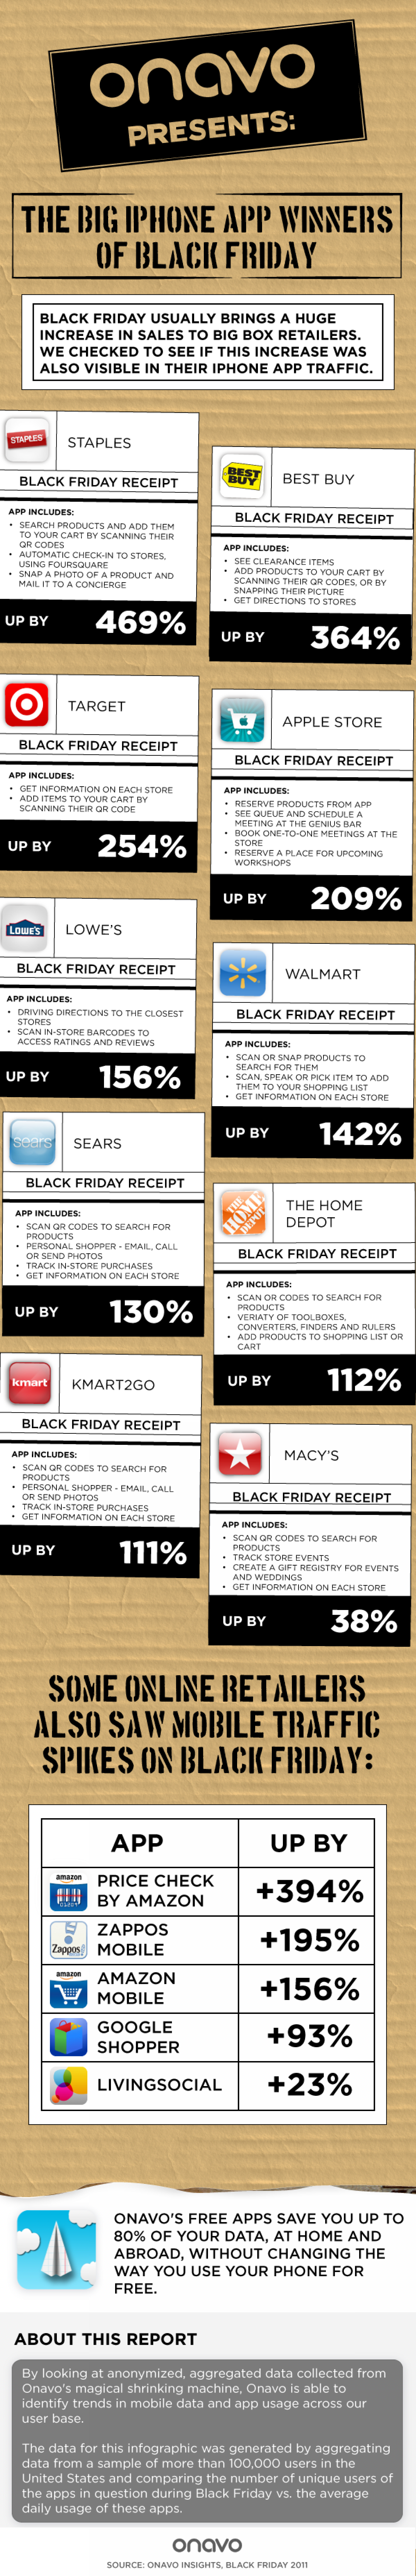 The Big iPhone App Winners of Black Friday Infographic